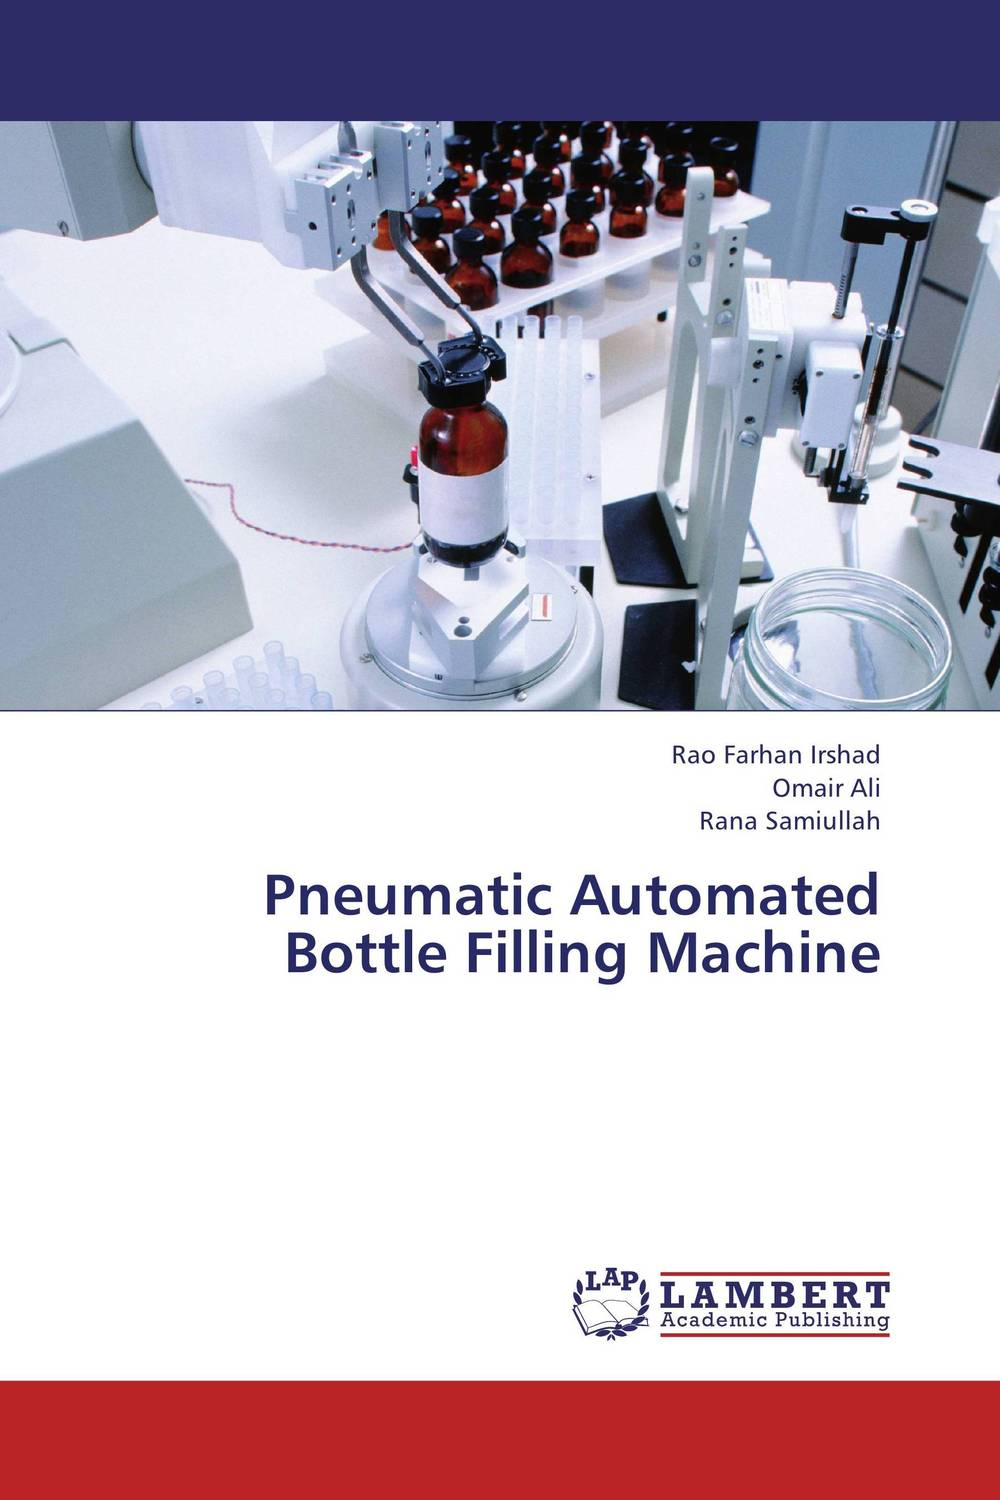 Pneumatic Automated Bottle Filling Machine